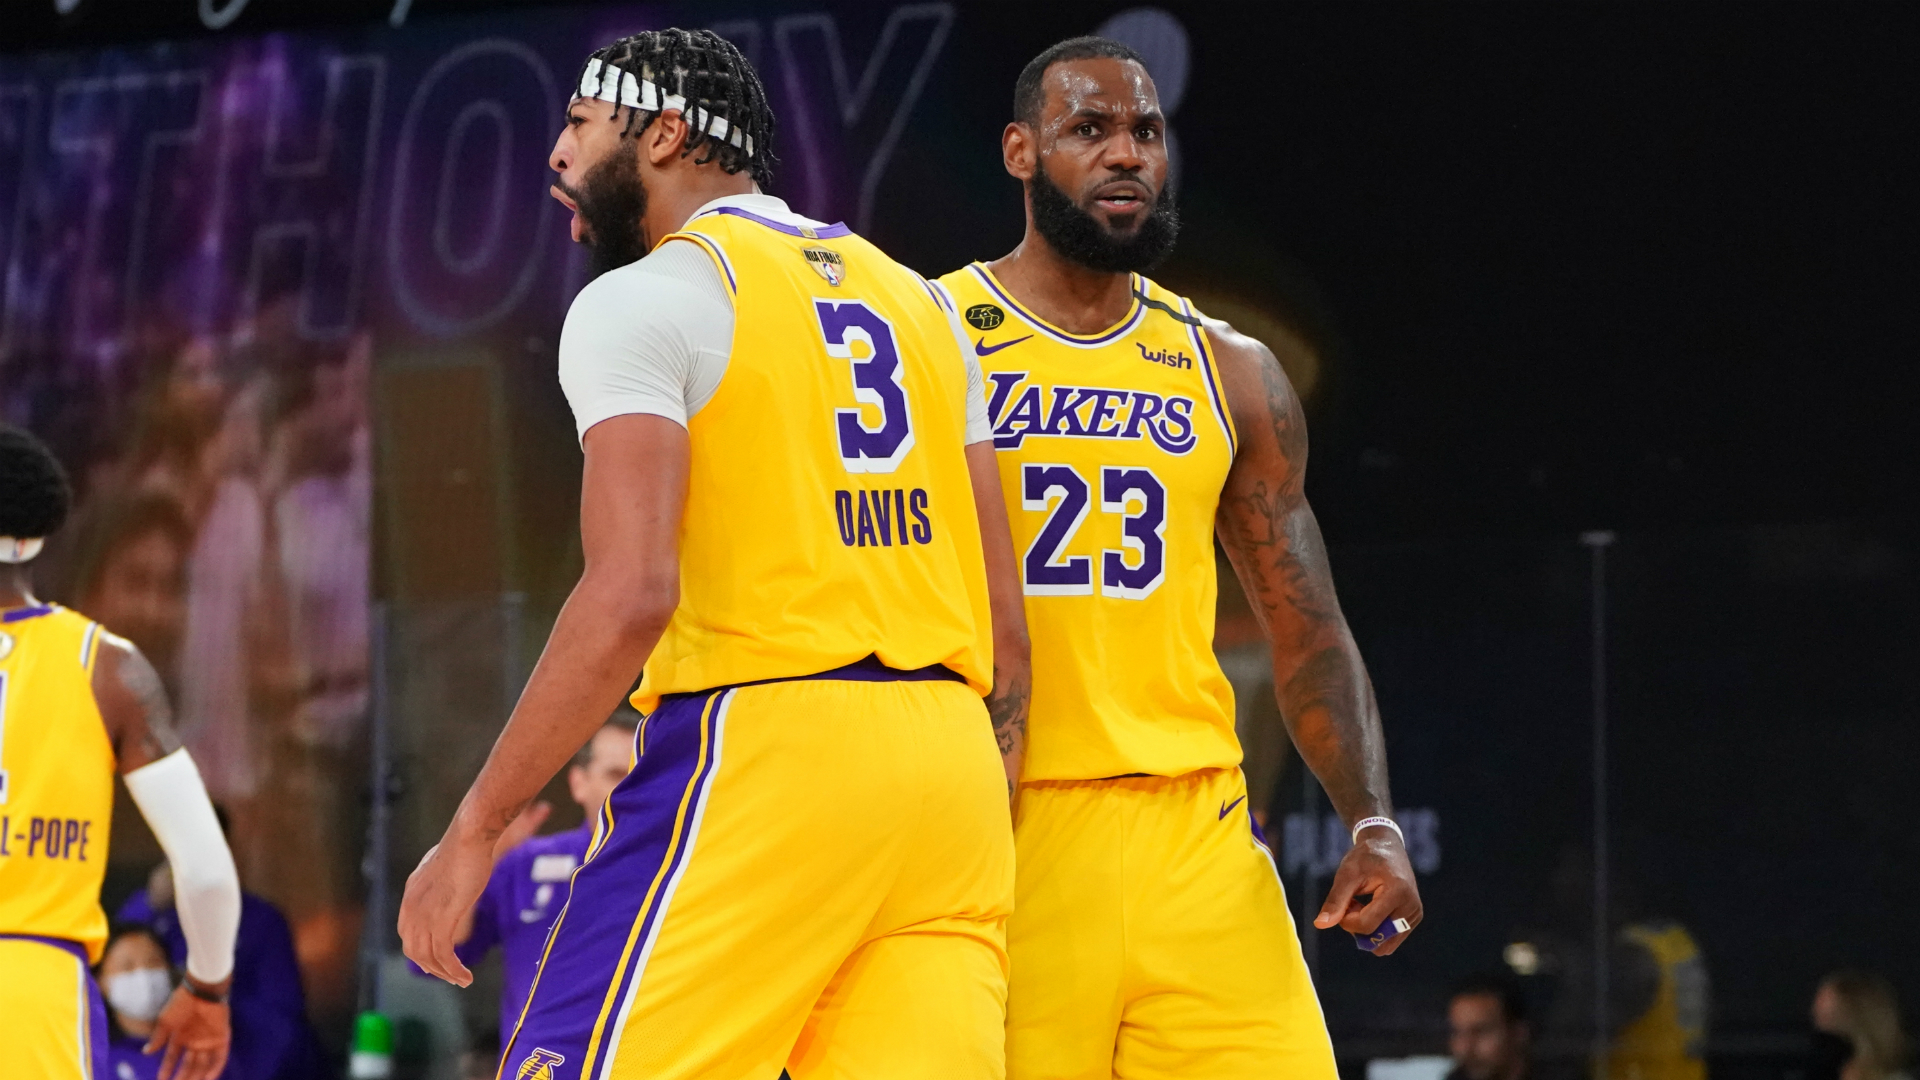 Nba Finals Lebron And Davis Lead Lakers In Game 1 Blowout Of Heat Basketball News Stadium Astro